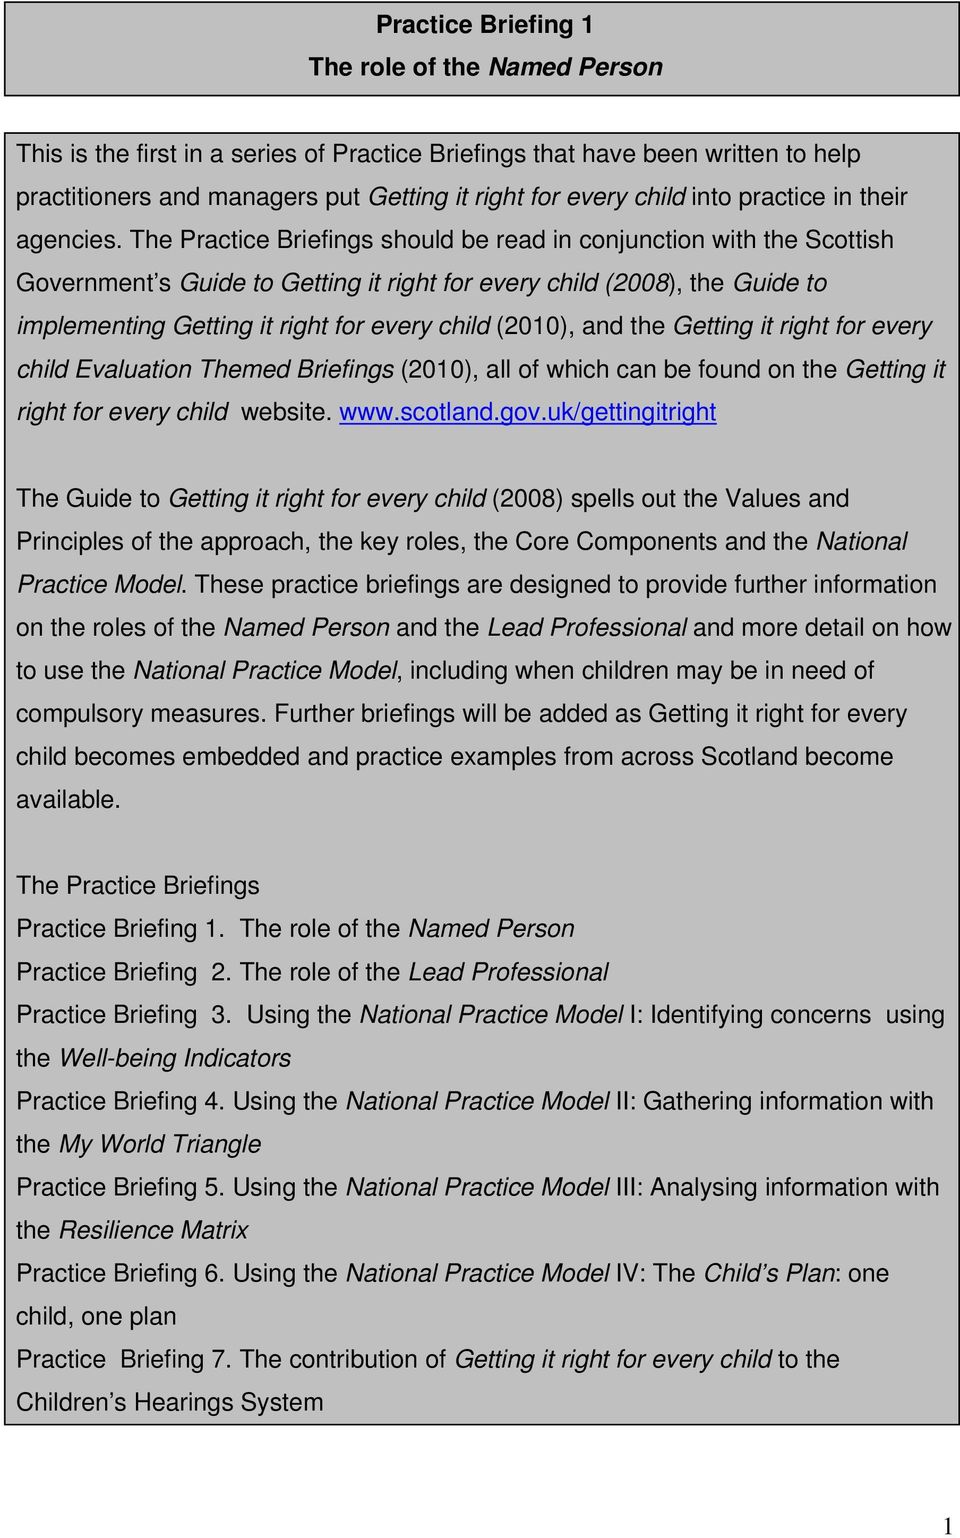 The Practice Briefings should be read in conjunction with the Scottish Government s Guide to Getting it right for every child (2008), the Guide to implementing Getting it right for every child